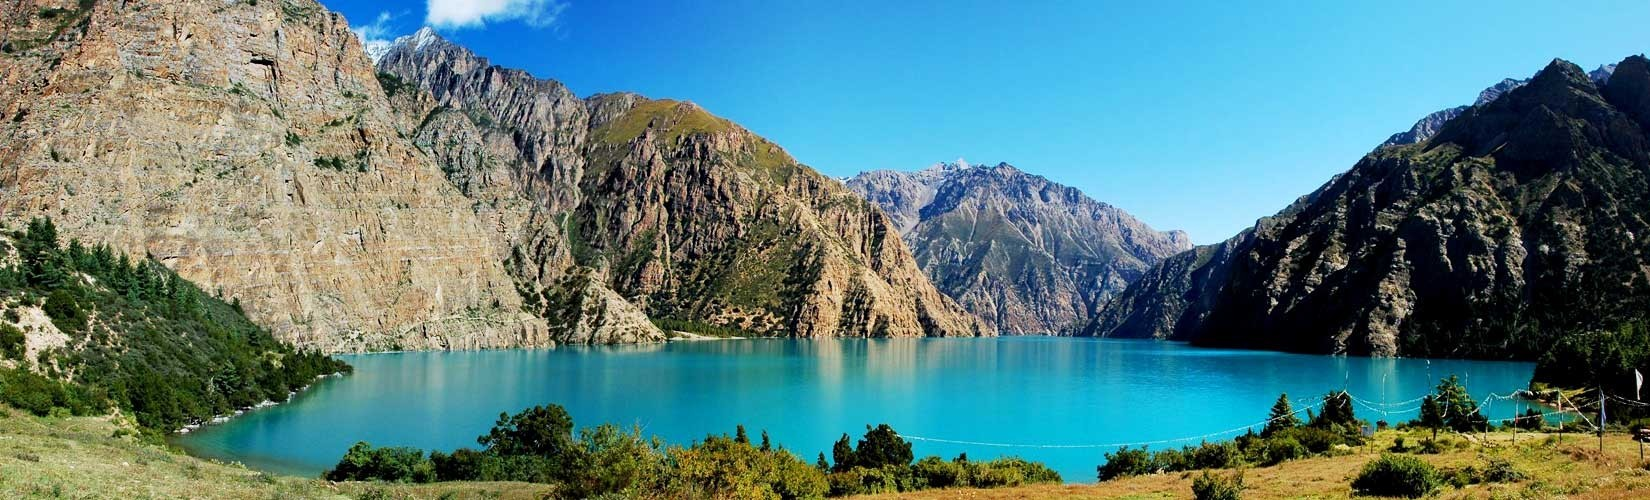 Panaroma of Phoksum Lake | Shot Dolpo Trek | Trekking in Nepal